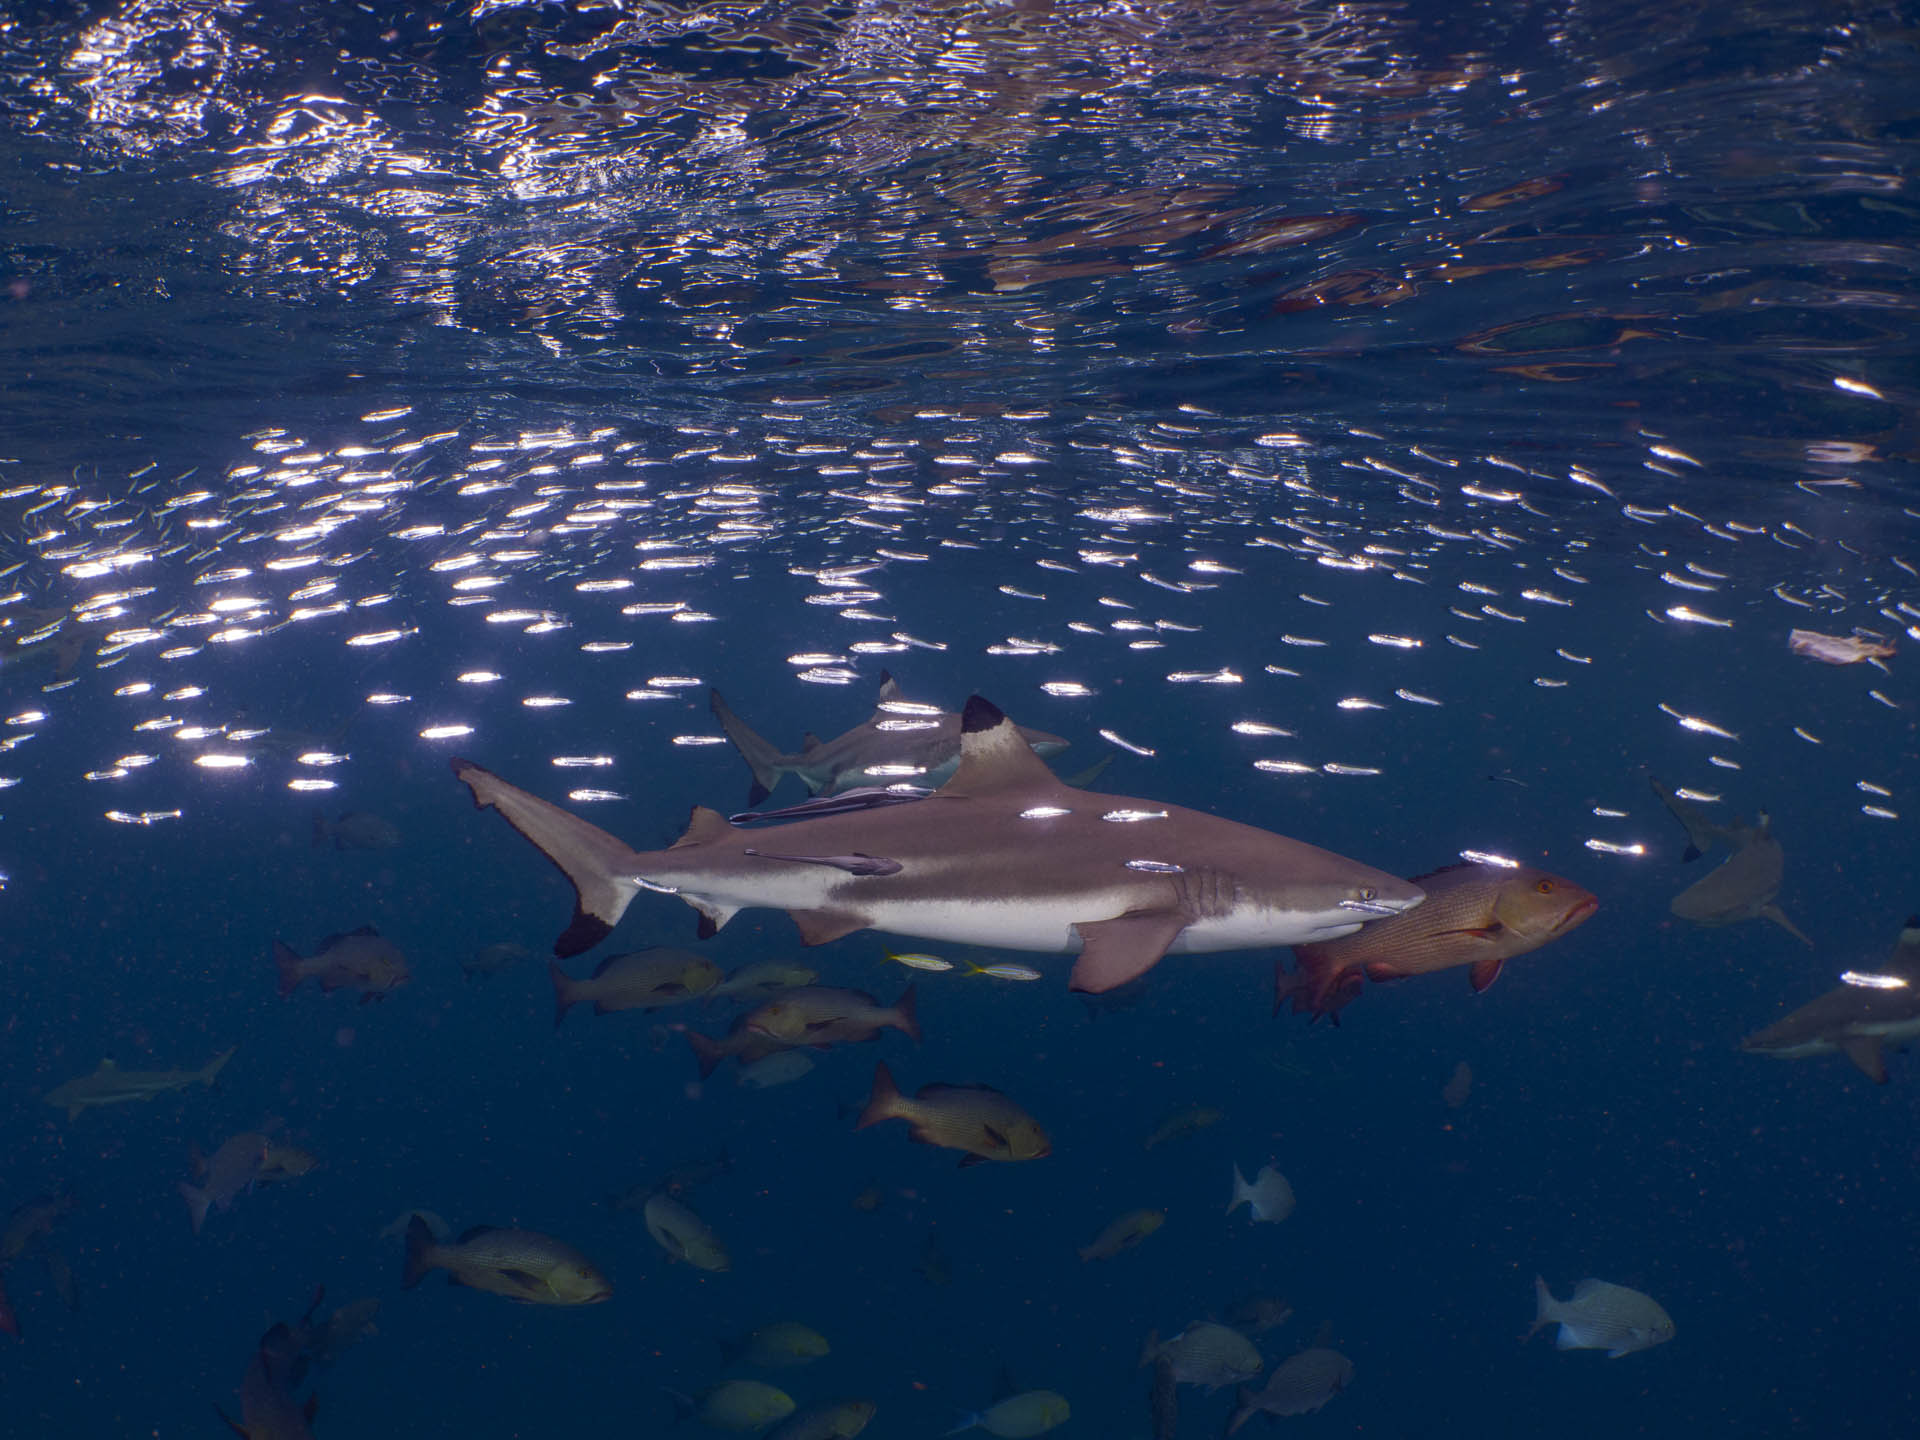 blacktip reef shark swimming through a school of fish